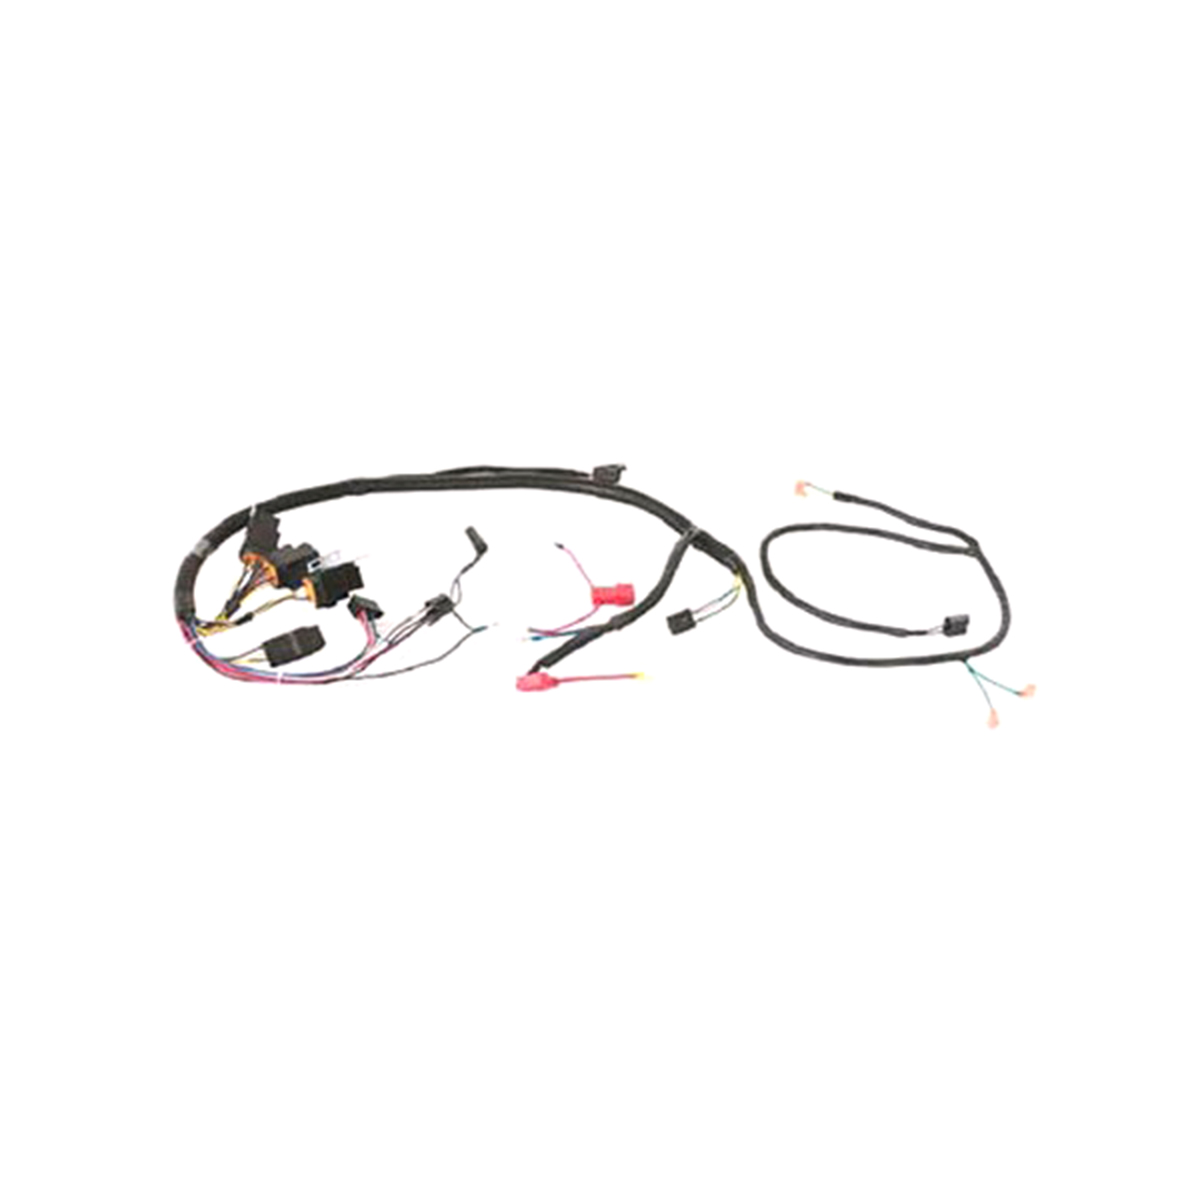 dixie chopper wiring harness 500086